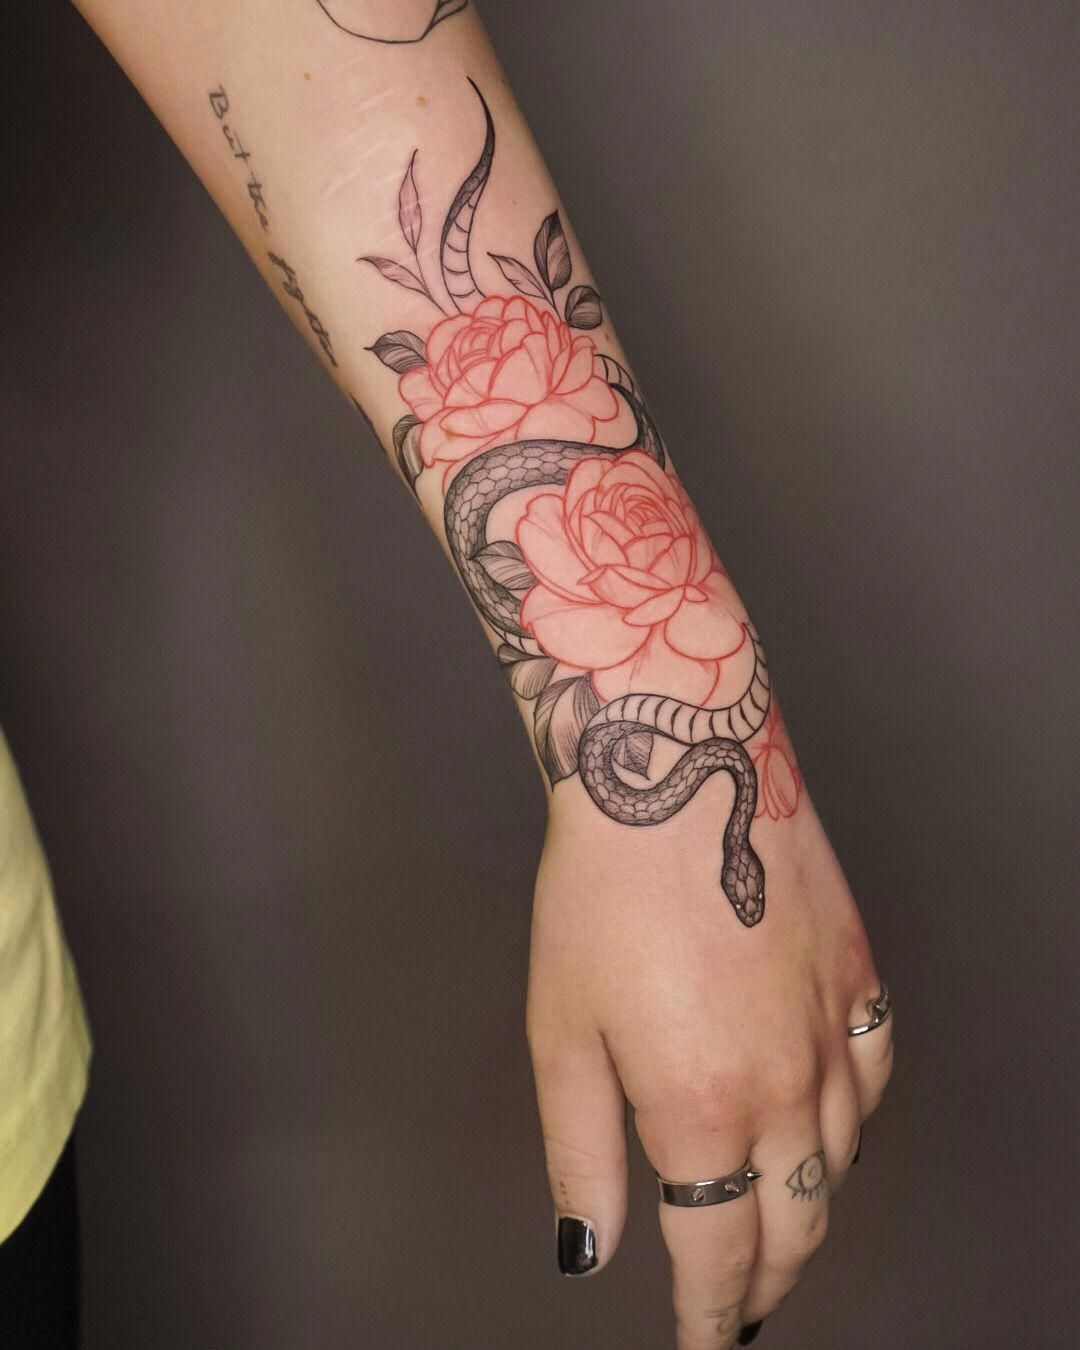 15 Beautiful Hand Tattoos For Both Men And Women Hand Tattoos Tattoos Tattoos For Guys